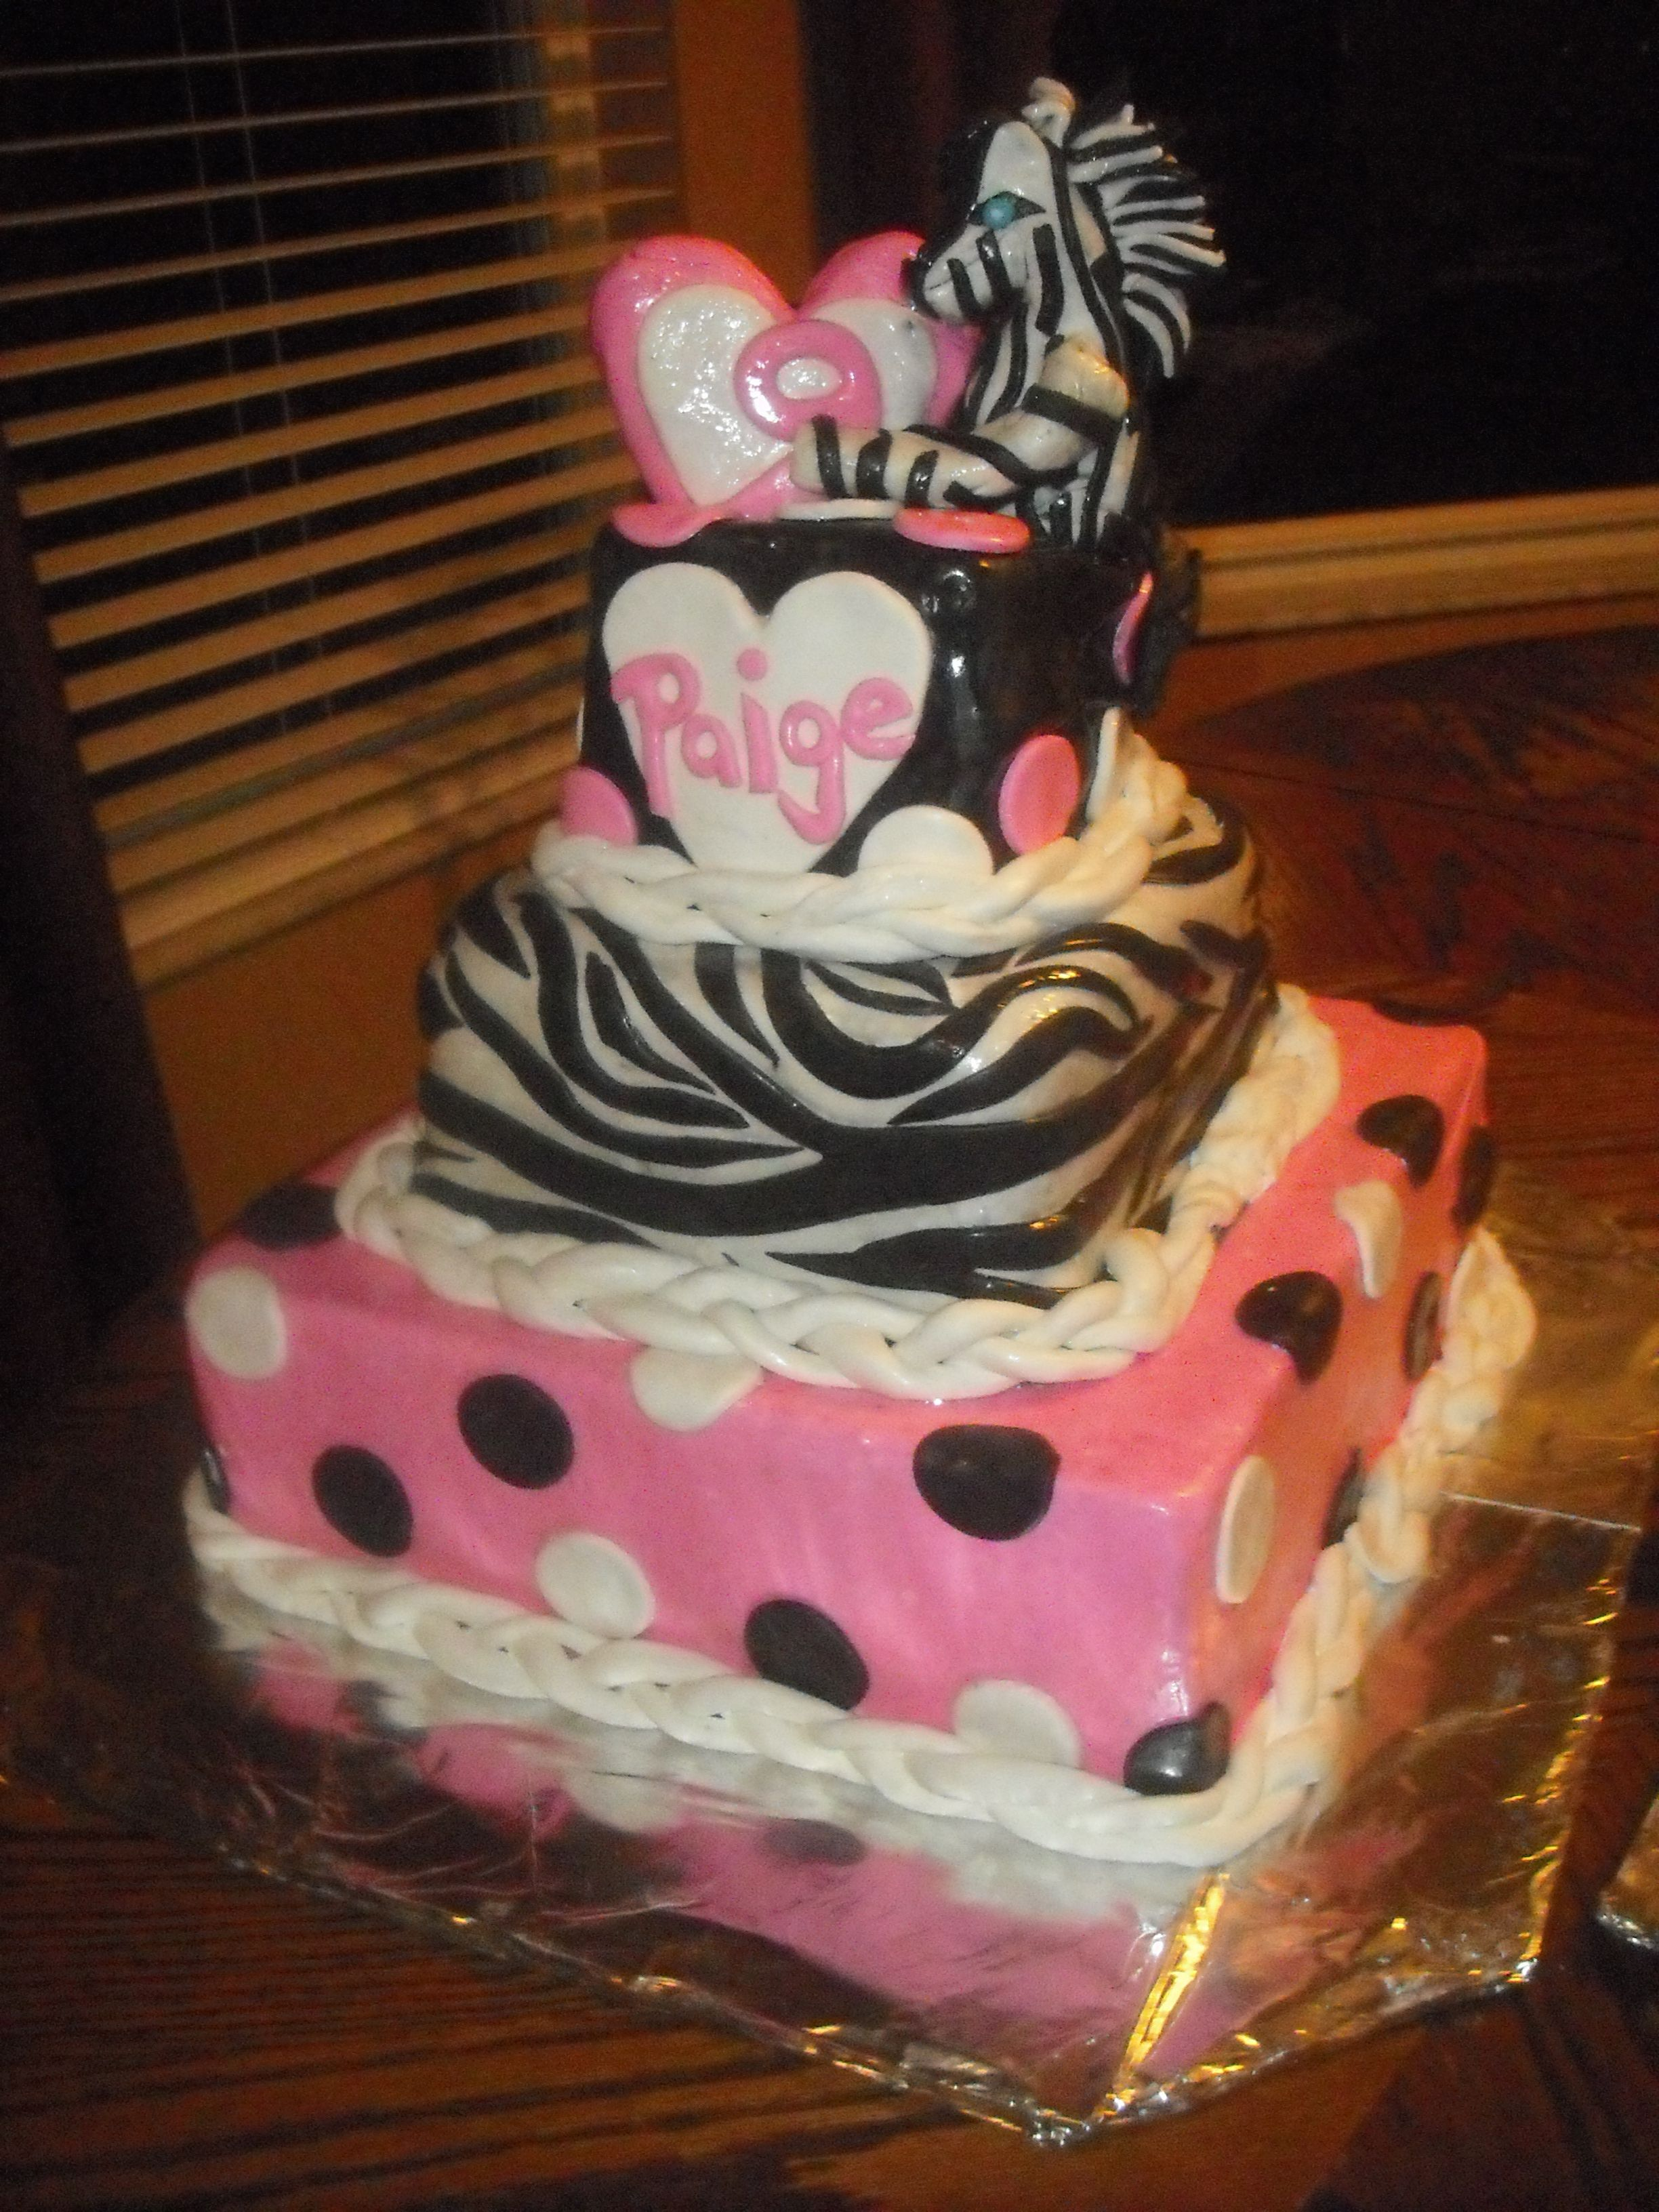 Paiges 9th Birthday Cake Cakes made by Neti Castilla